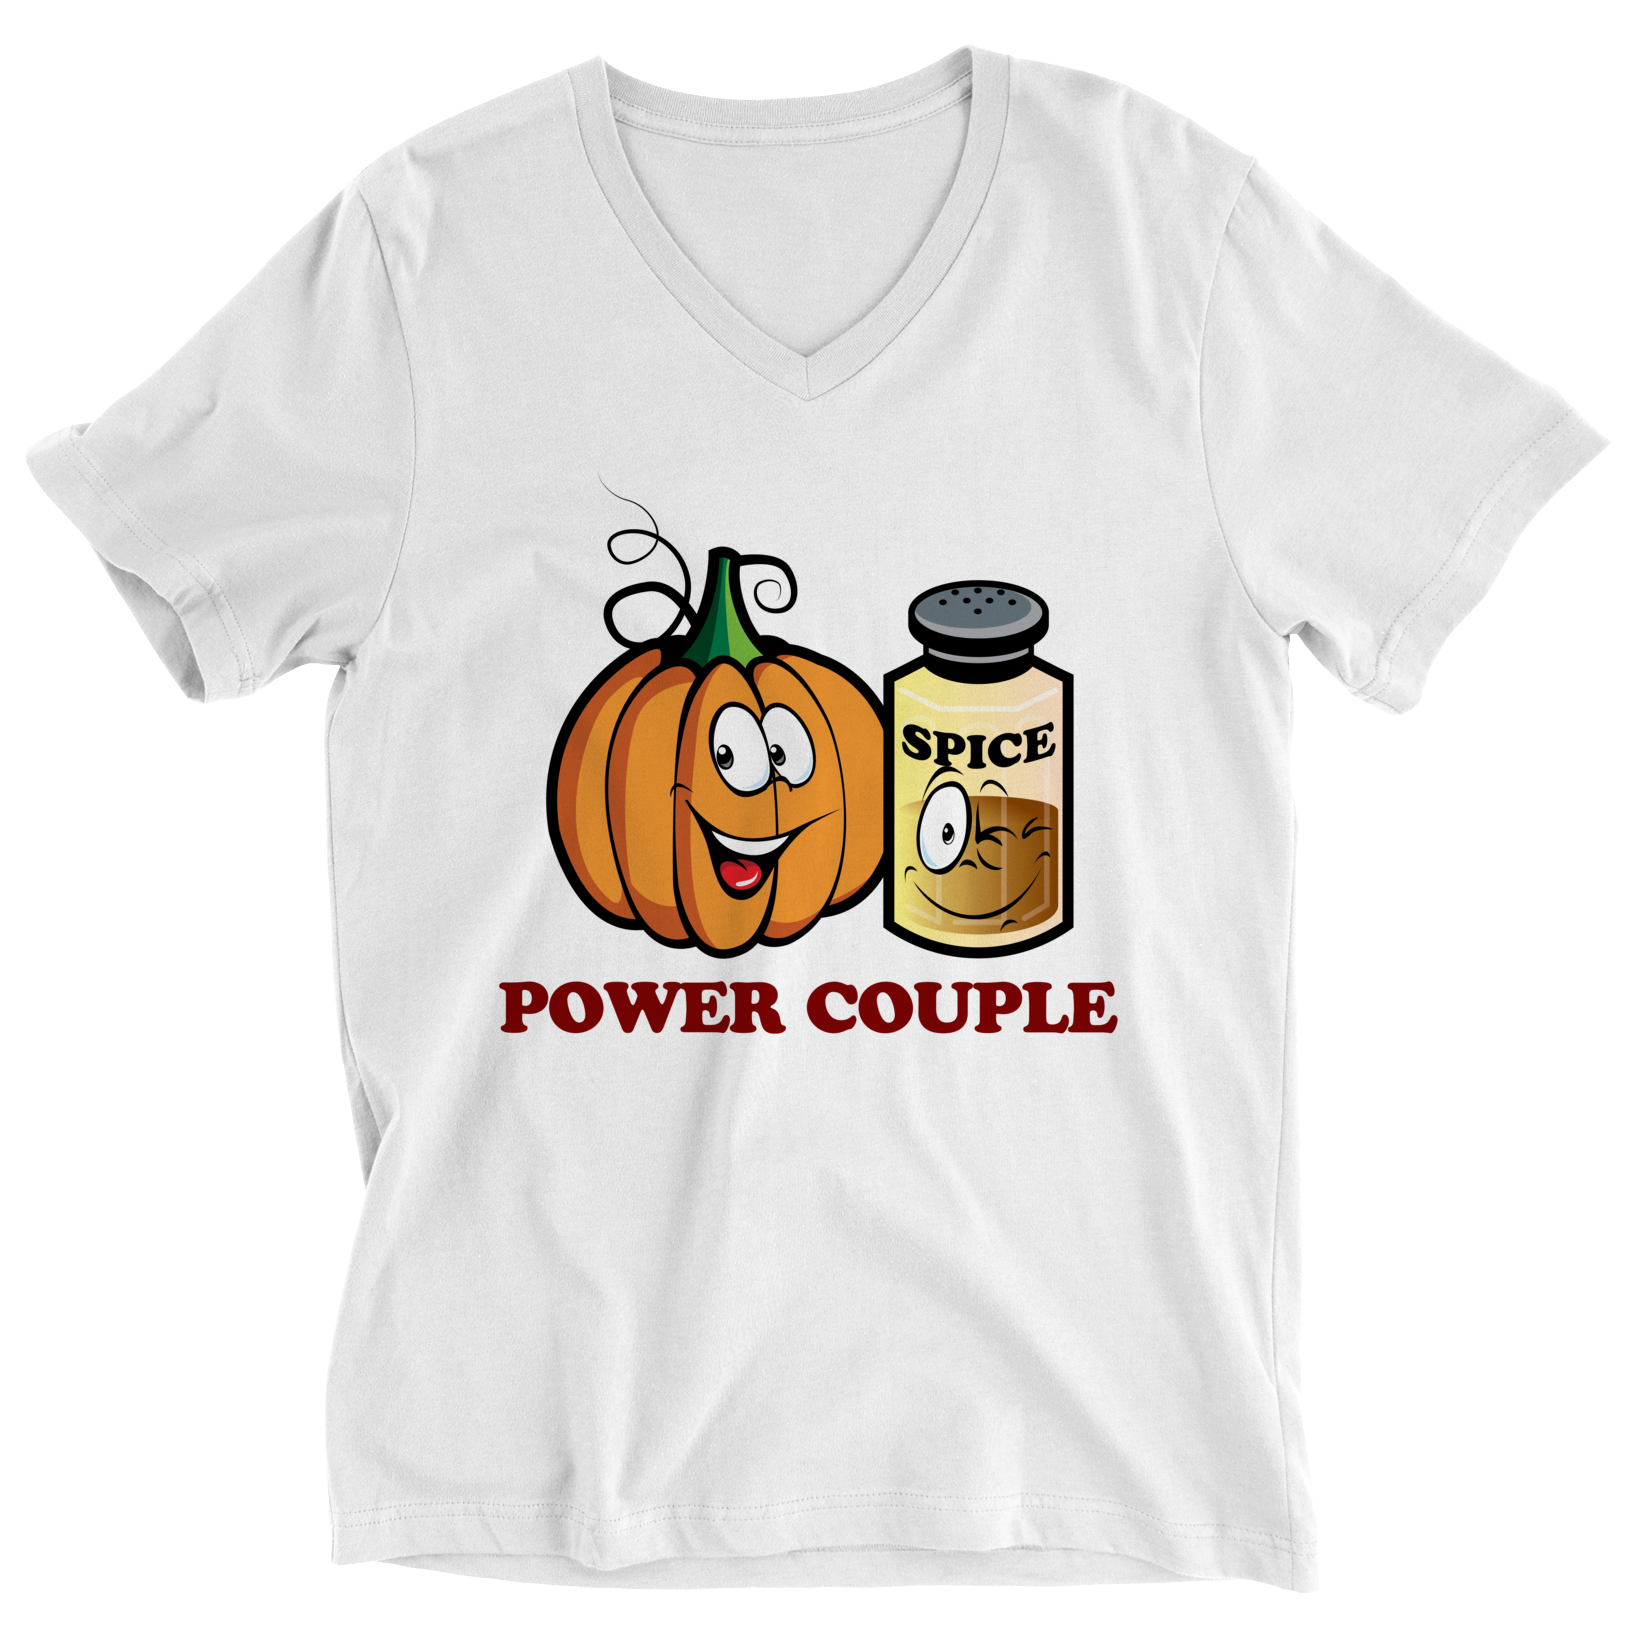 Limited Edition - Power Couple. * JUST RELEASED *  Limited Time Only This item is NOT available in stores. Guaranteed safe checkout: PAYPAL | VISA | MASTERCARD Click BUY  IT NOW  To Order Yours!  Note - Usually ships within 3 - 5 days